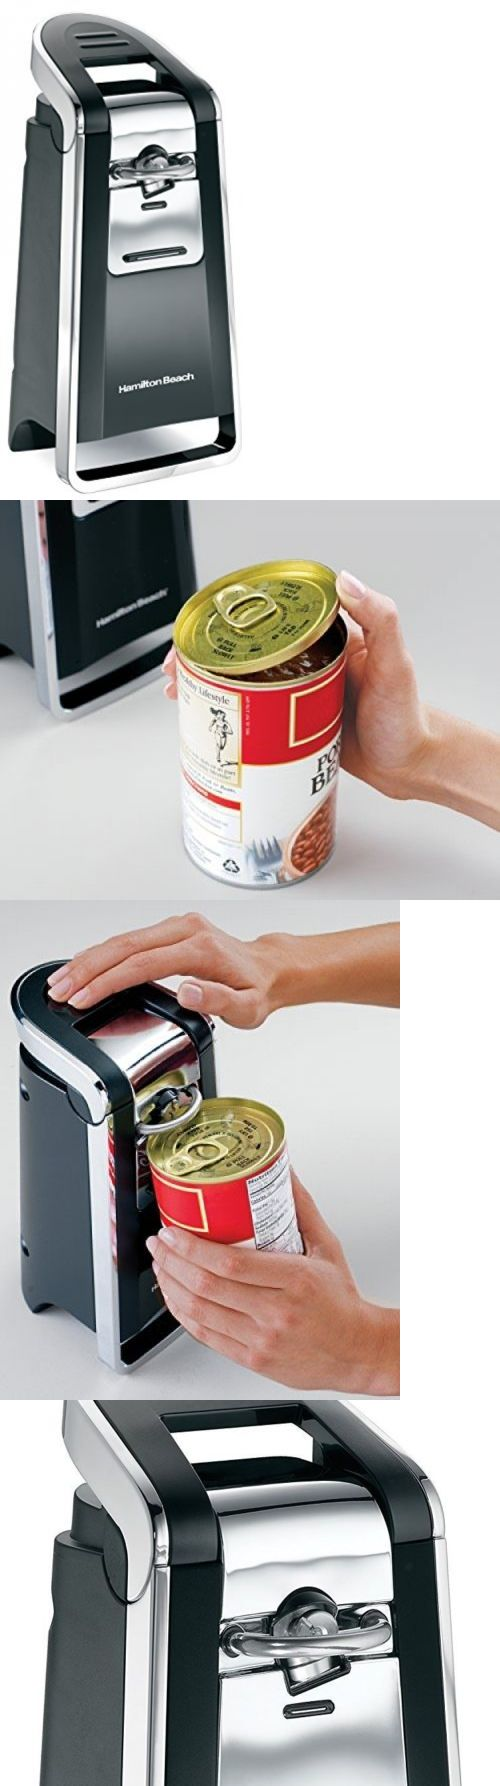 Can Openers and Crushers 20670: Smooth Touch Electric Can Opener Side Cutting System Large Lever Kitchen Gadget -> BUY IT NOW ONLY: $36.99 on eBay!